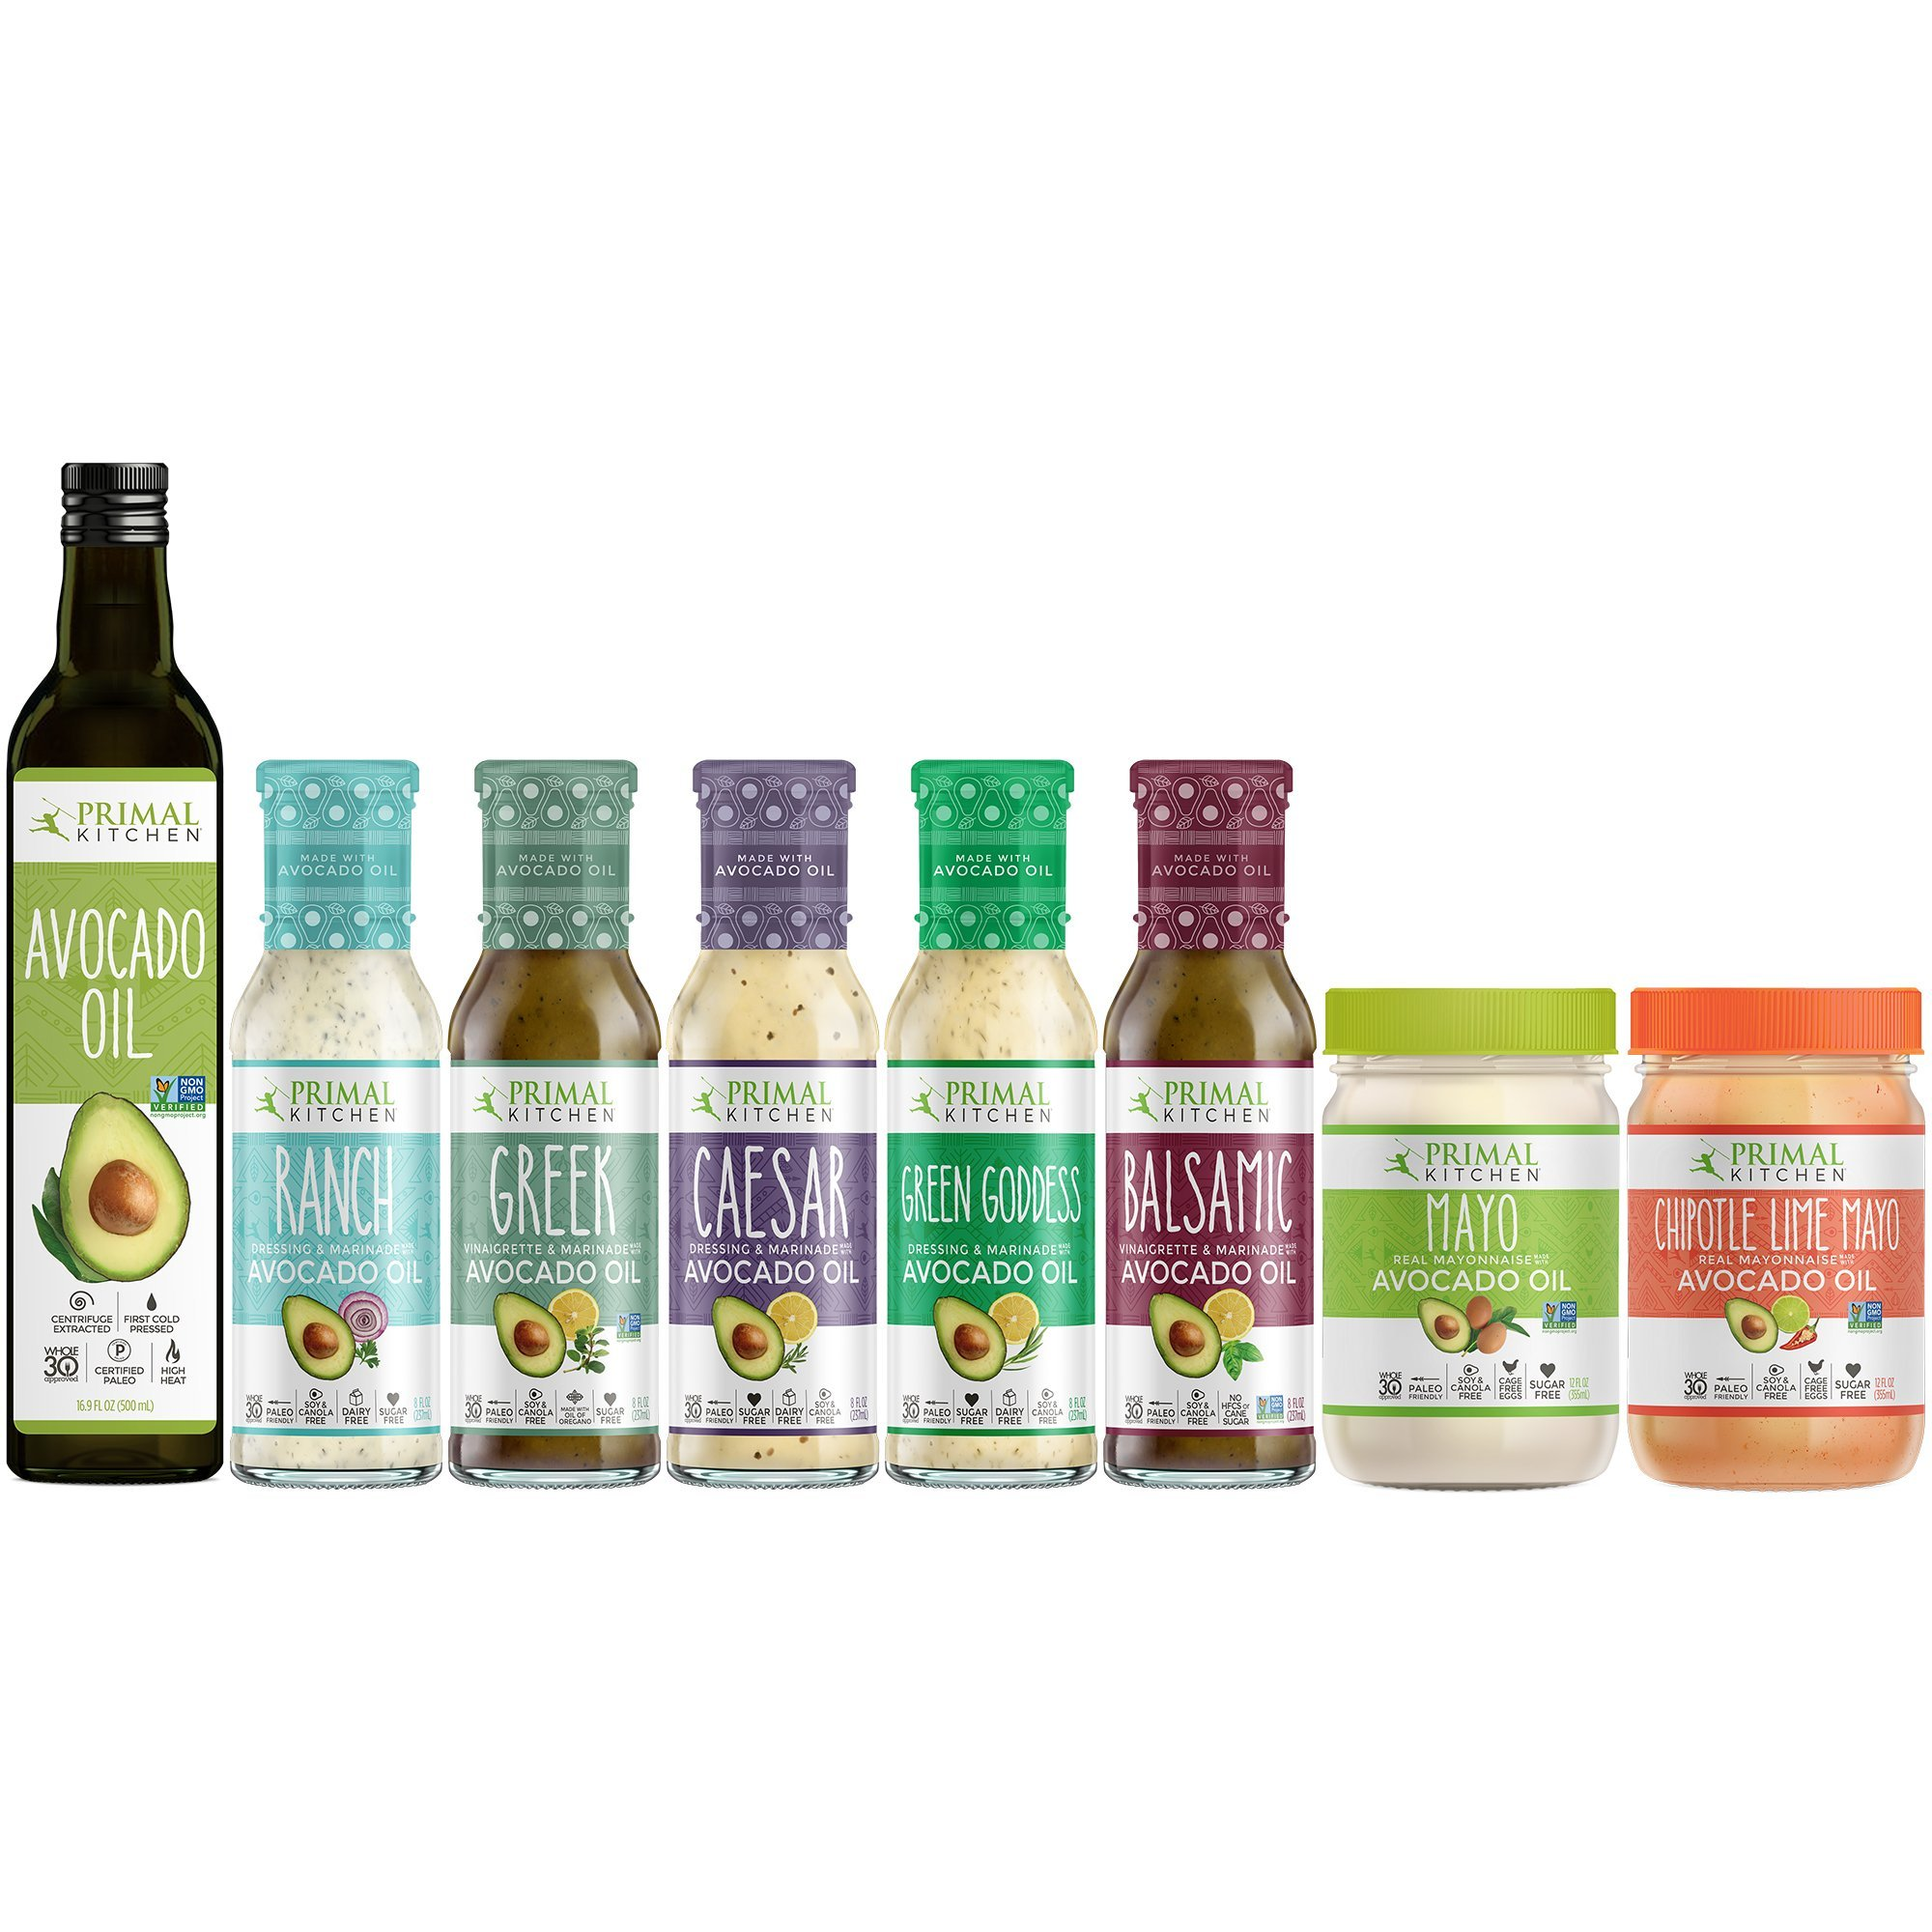 Primal Kitchen Whole 30 Advanced Kit Includes Avocado Oil, Avocado Oil Mayo, and Avocado Oil Dressings (8 count)